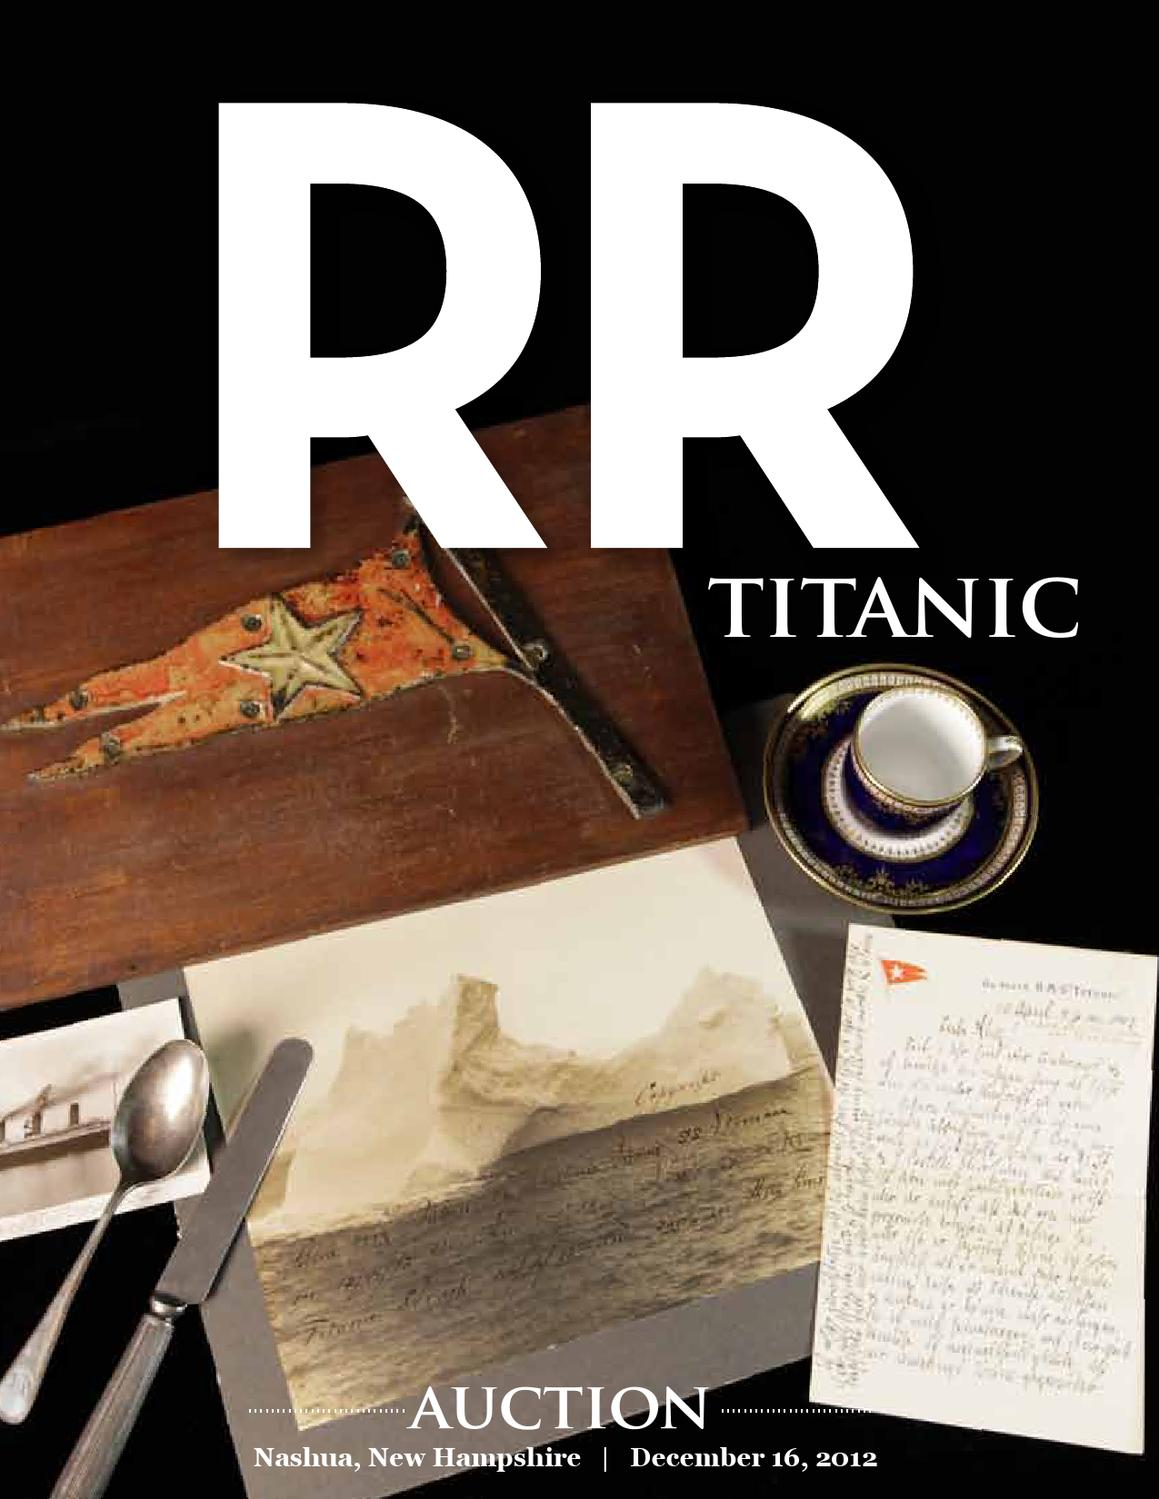 Live event titanic auction december 16 in nashua nh by rr live event titanic auction december 16 in nashua nh by rr auction issuu aiddatafo Images